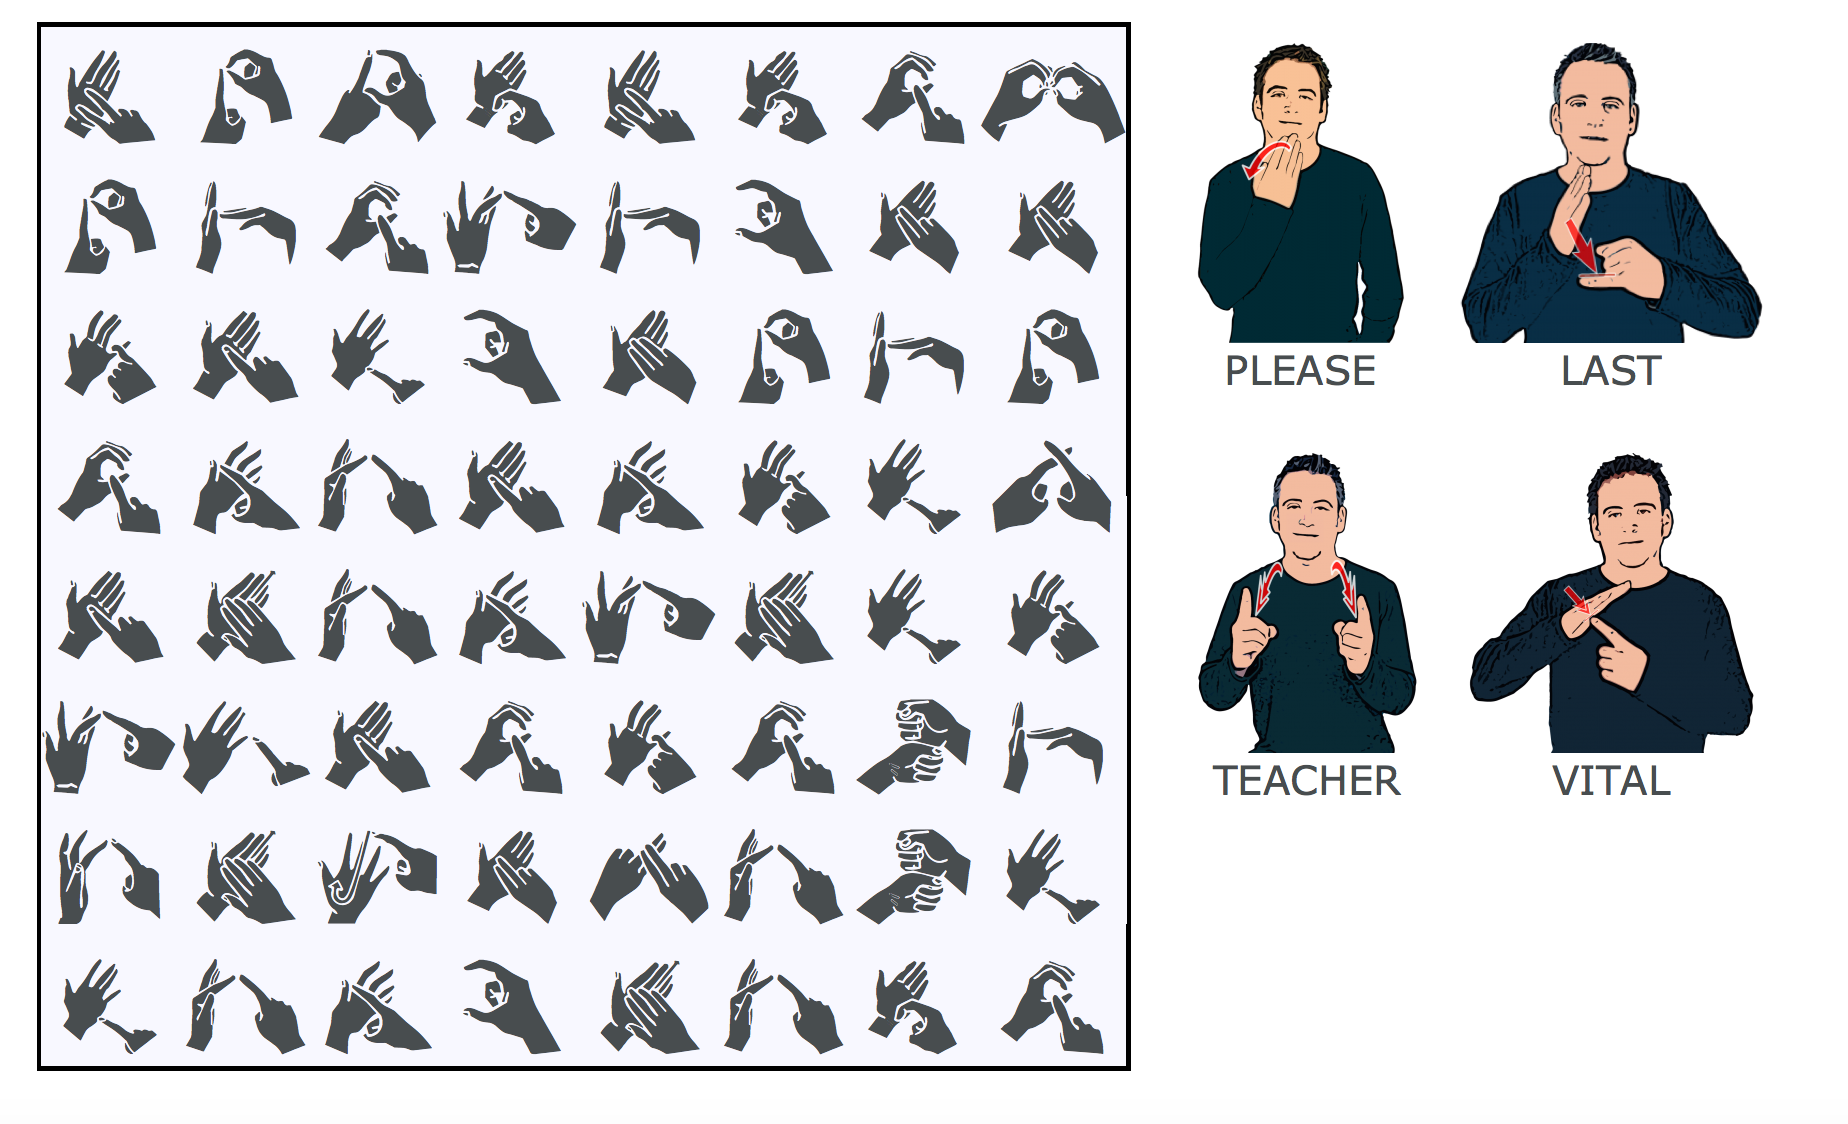 Practice your fingerspelling skills and learn some new signs with our online BSL word search puzzles. http://www.british-sign.co.uk/bsl-british-sign-language/bsl-word-search/